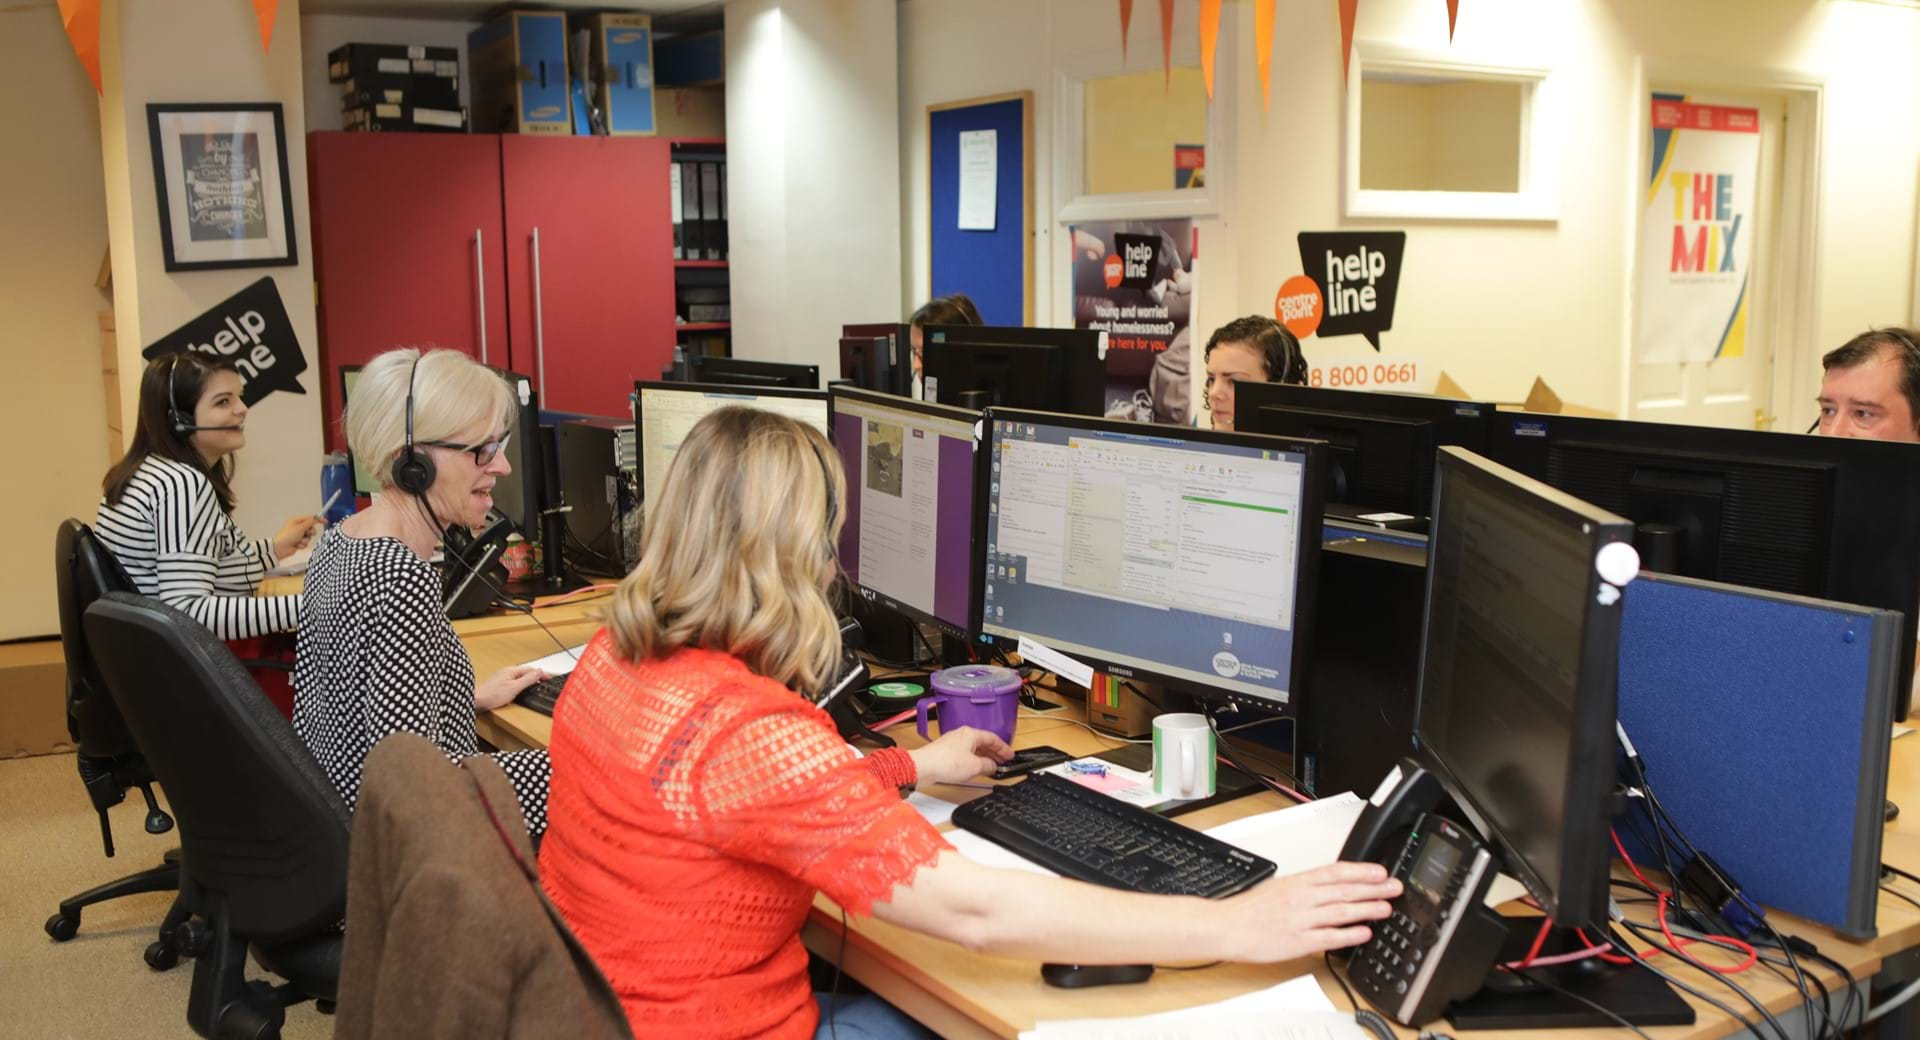 An image of The Centrepoint Helpline office,  which is the only Helpline for homeless young people.